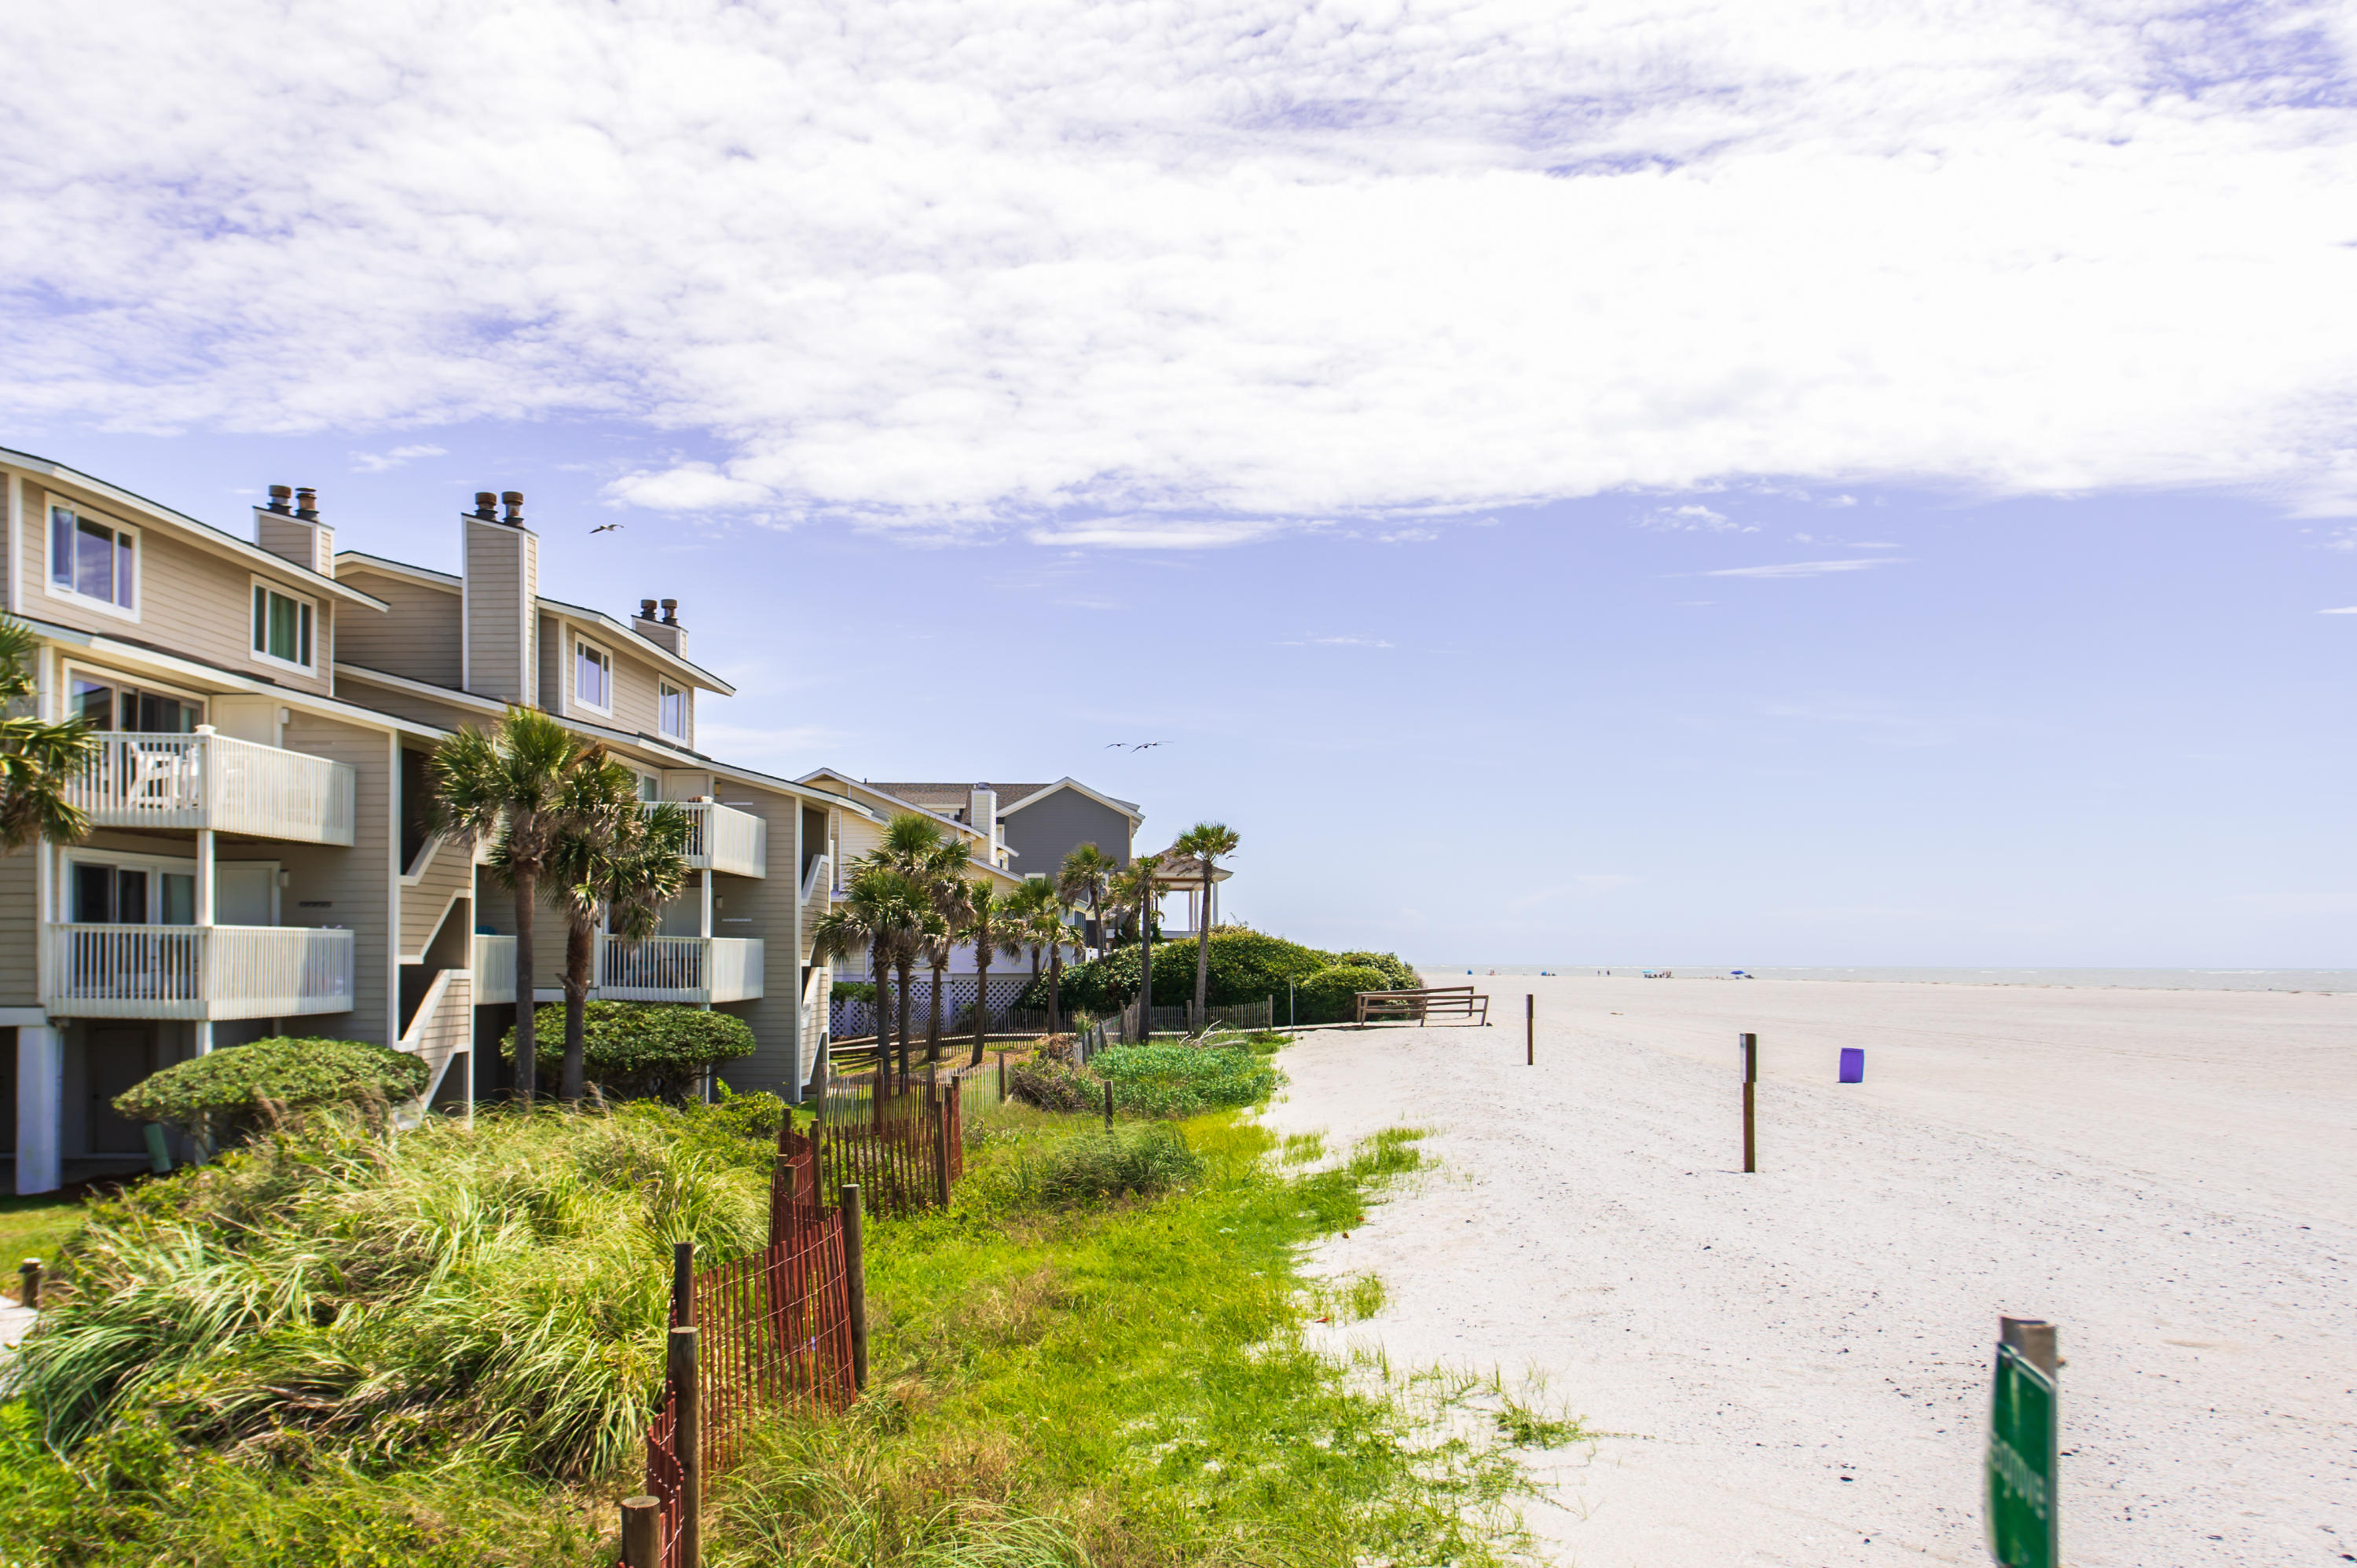 7 Seagrove Isle Of Palms, SC 29451